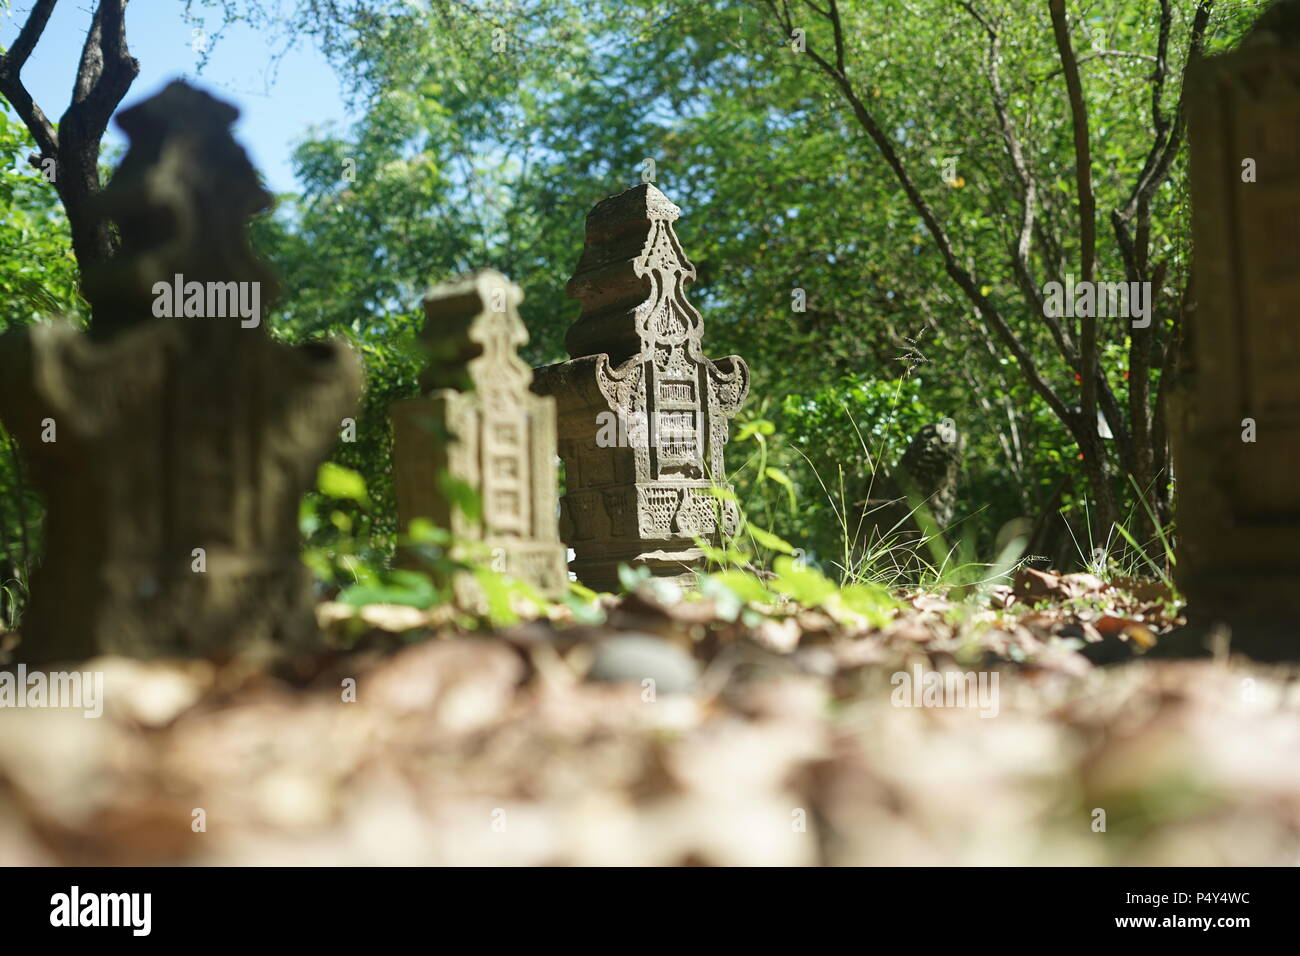 Ancient Aceh tombstone as an Islamic cultural heritage in southeast asia - Stock Image